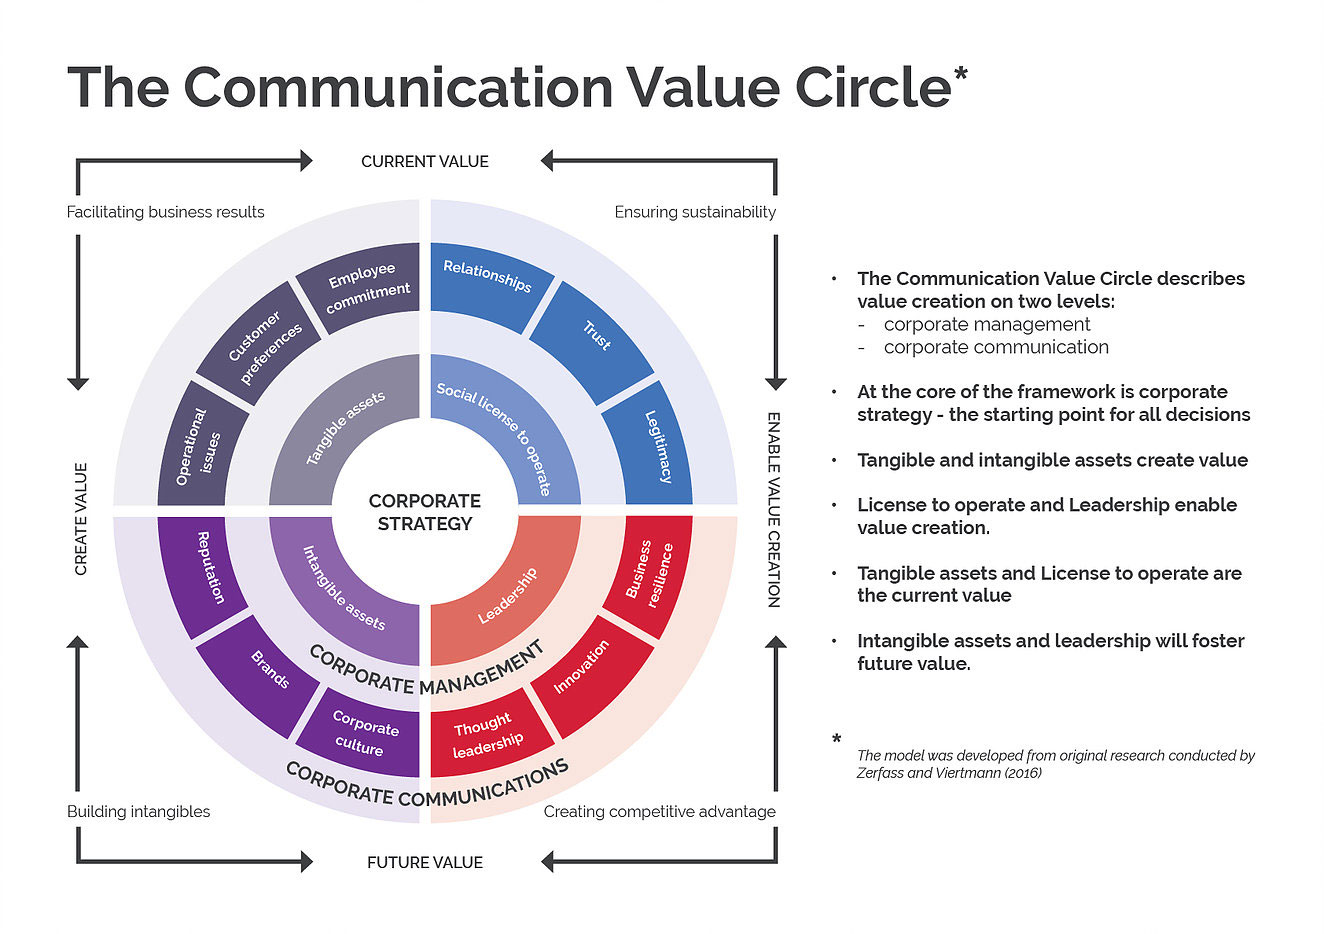 Finally, A Framework for Thinking Strategically about Communication Value